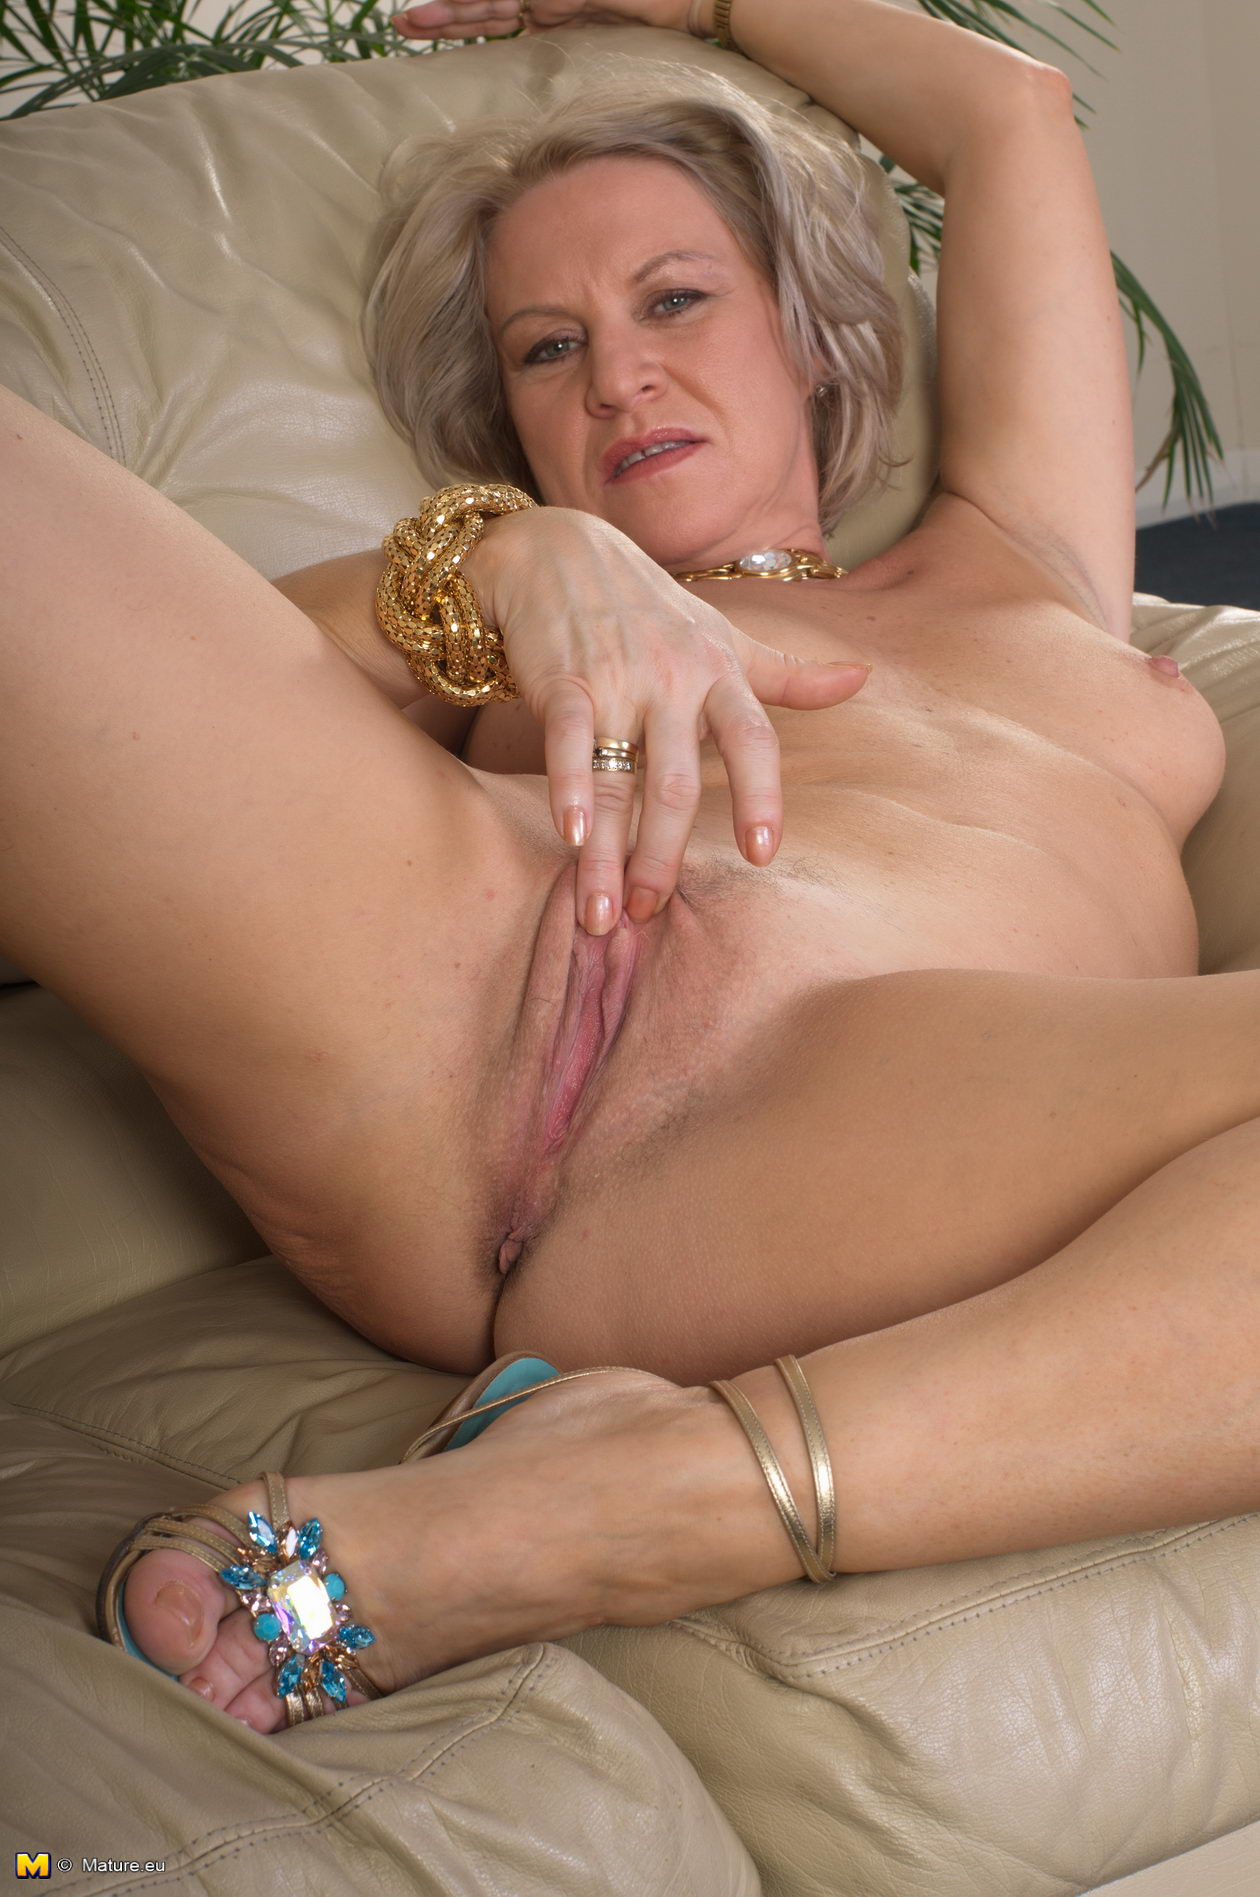 For Blonde 65 70 To Looking Sex Woman Single